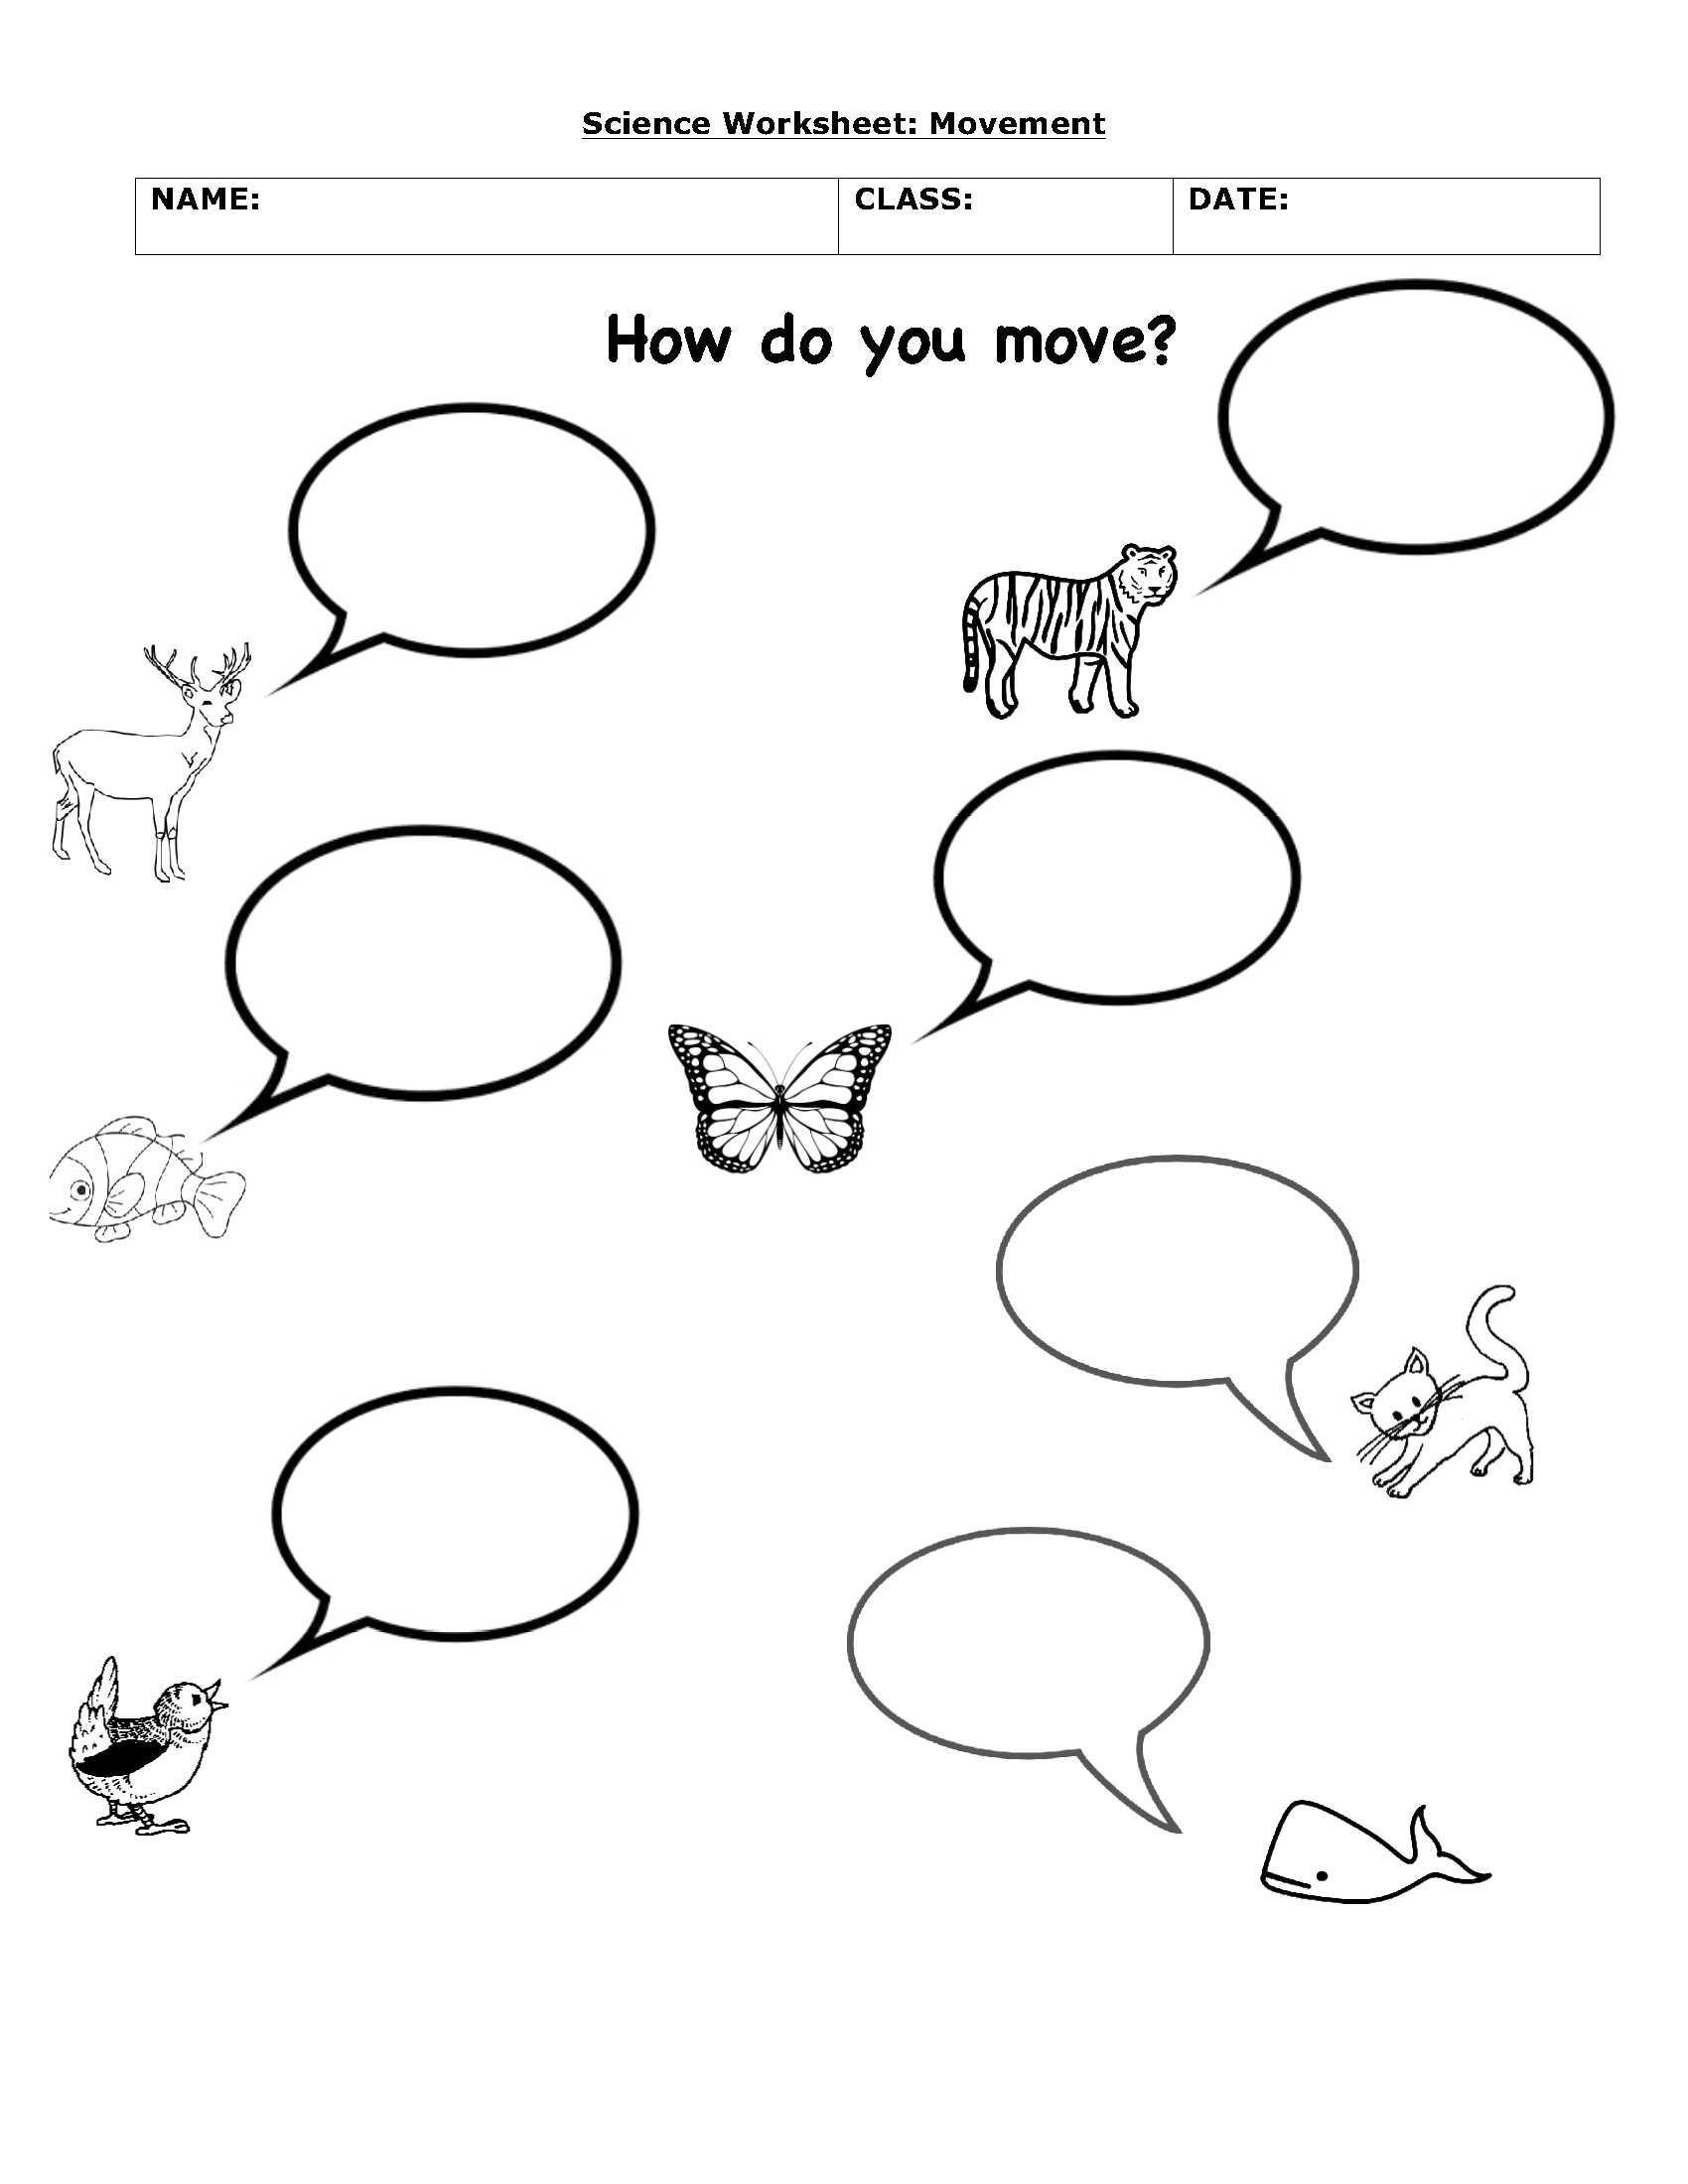 Plant and Animal Adaptations Worksheet Animal Prehension Worksheet Printable Worksheets and